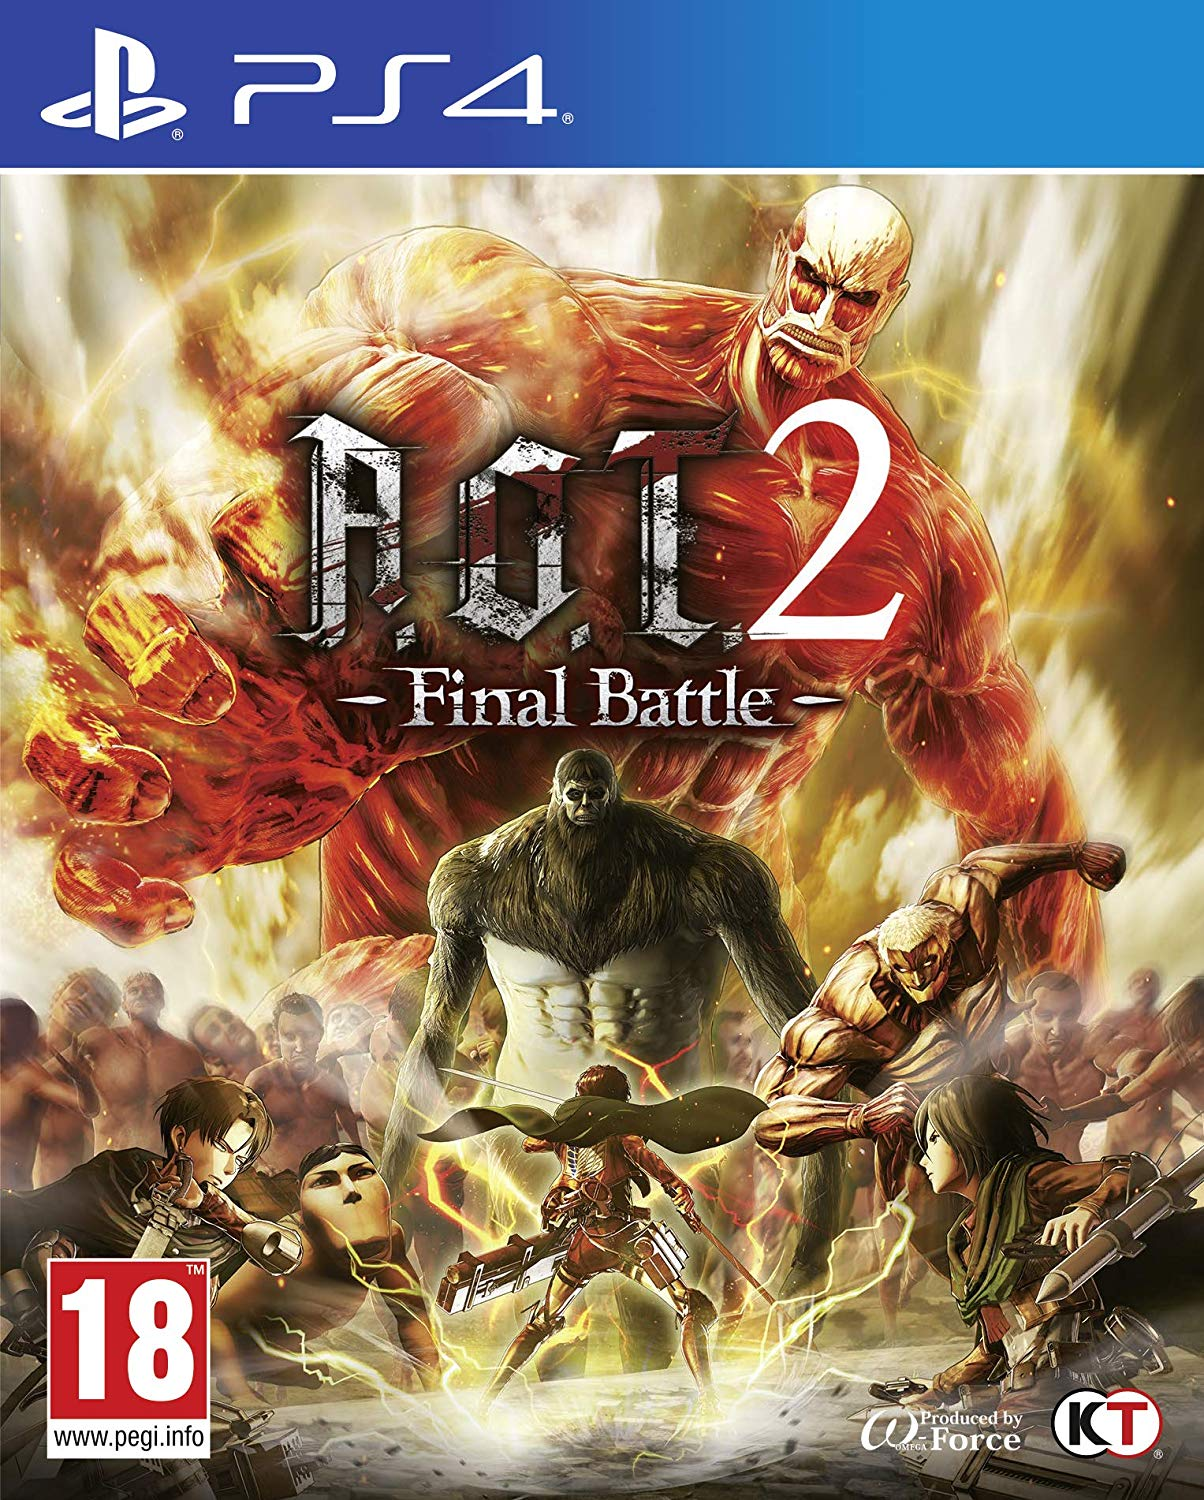 Attack on Titan 2 (AOT 2) Final Battle - PlayStation 4 Játékok